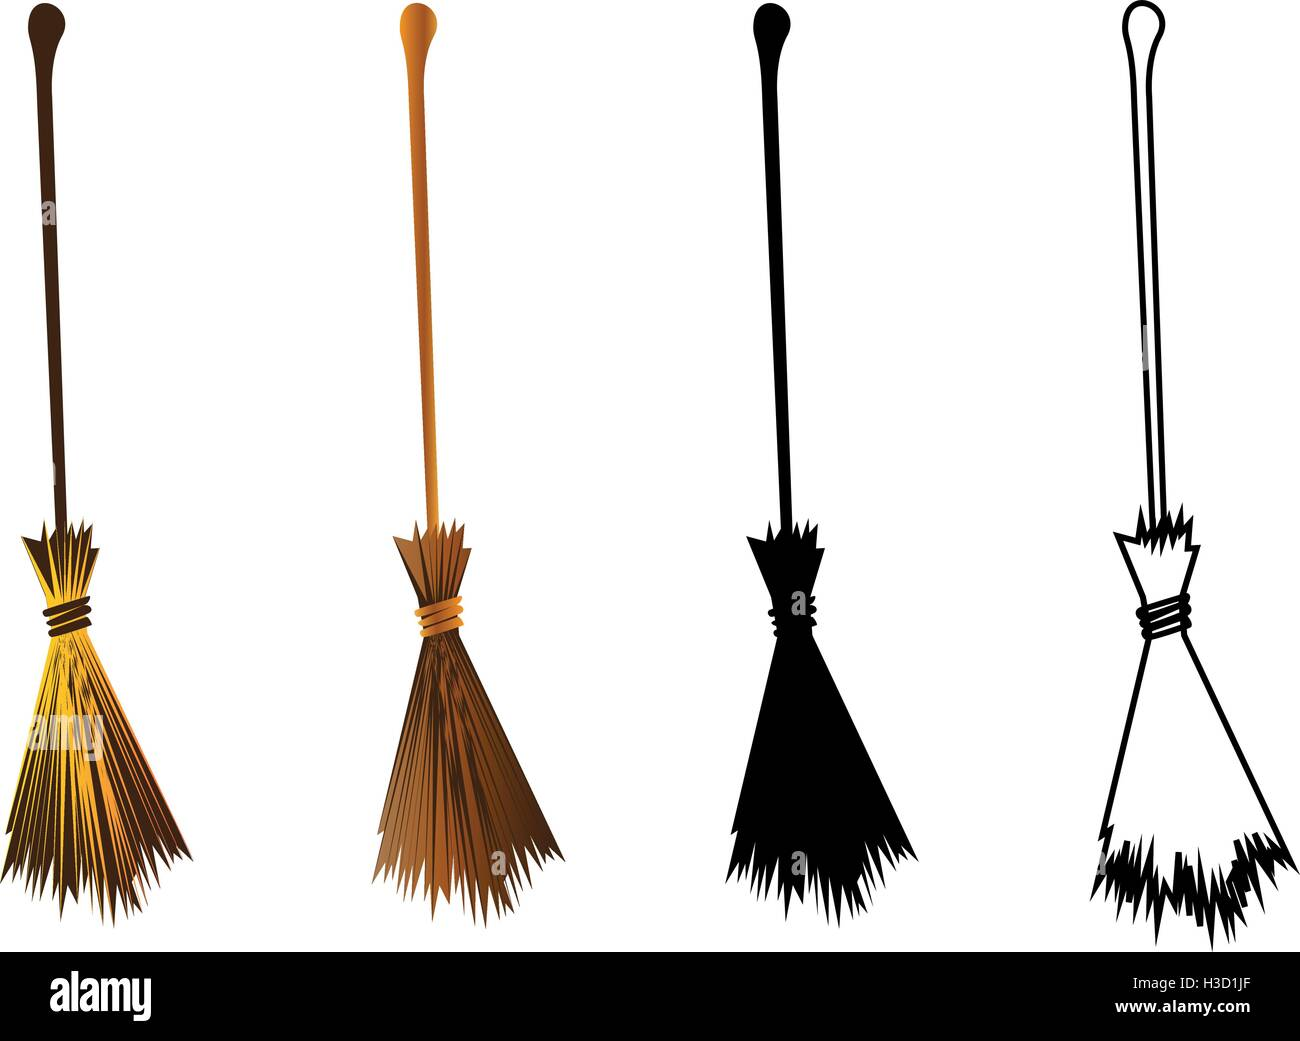 halloween witches broomstick witches broom illustration stock image